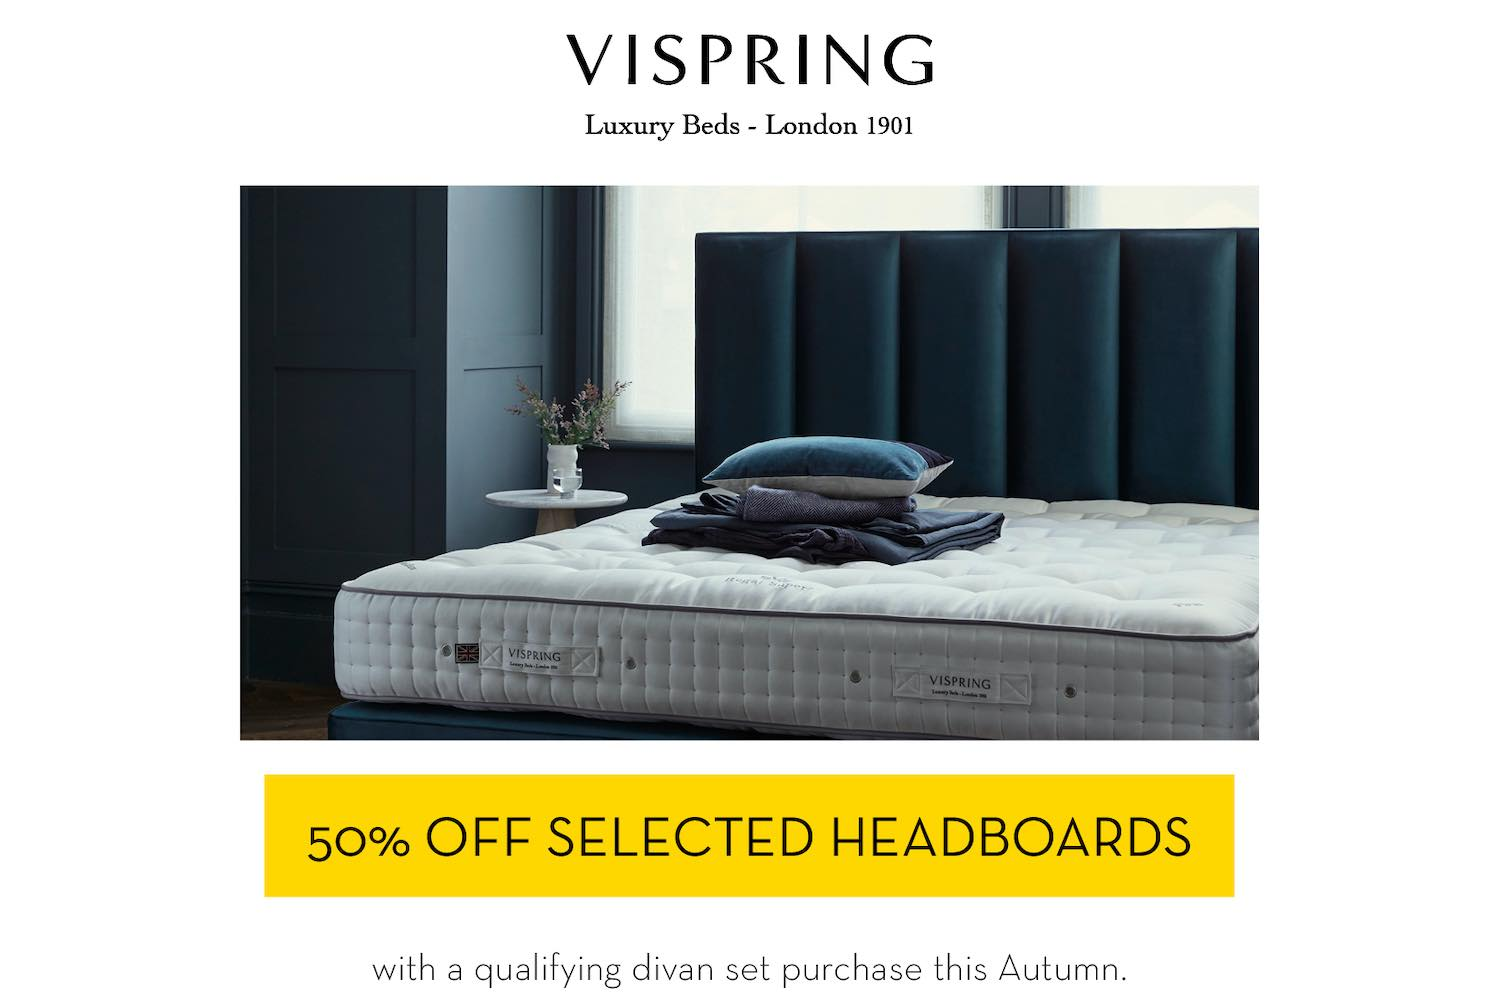 Vispring headboard promotion